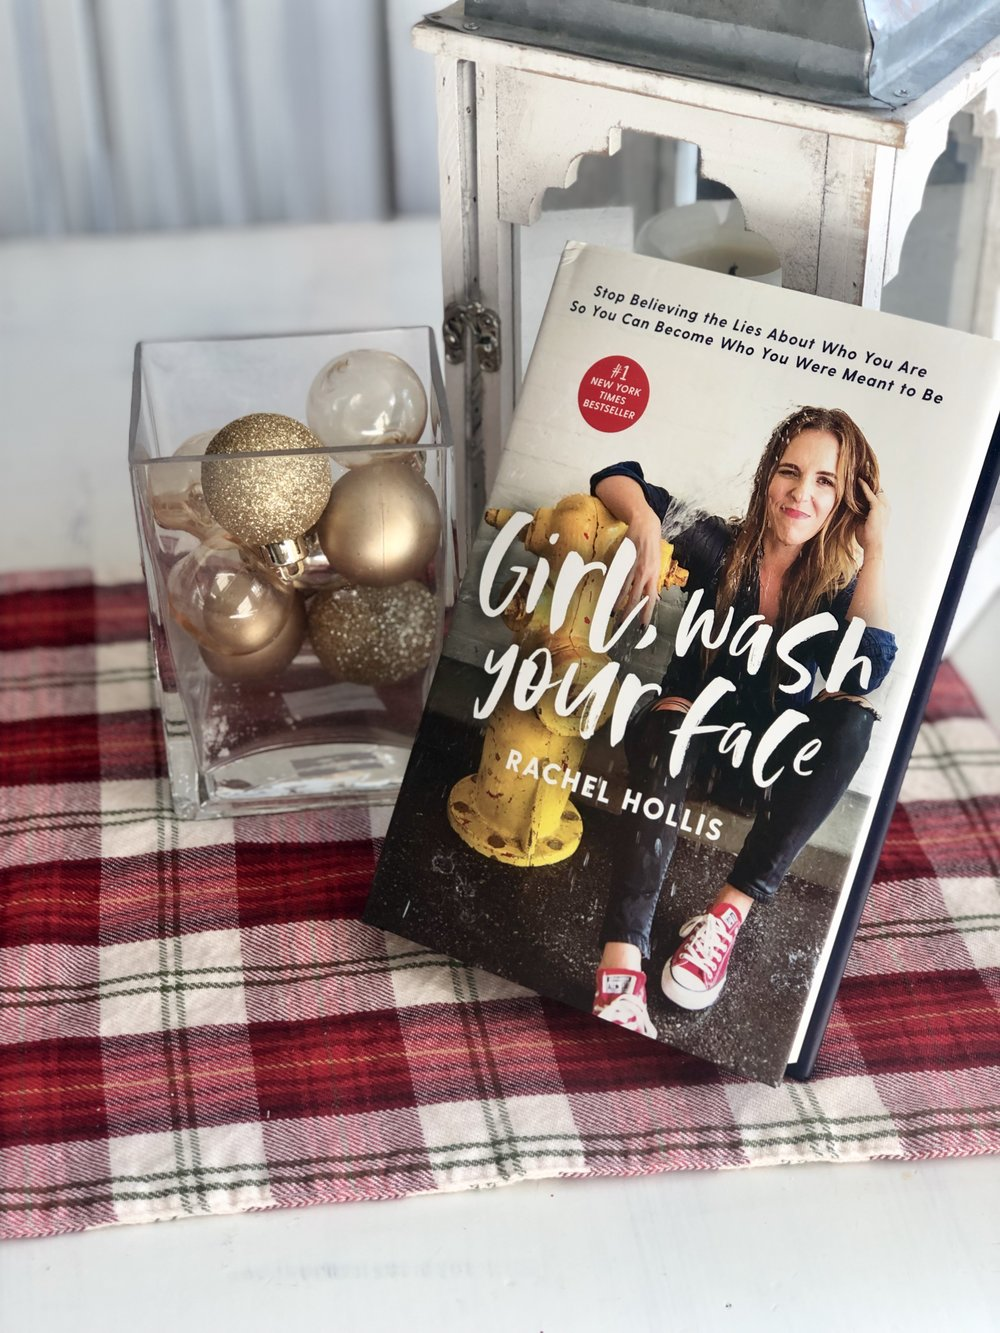 I love listening to a podcast while on the road or at my desk working. One of my favorite ones to listen to is  The Rise by Rachel Hollis  so I am very excited about putting Rachel's book in someone's stocking…it actually might end up in mine.